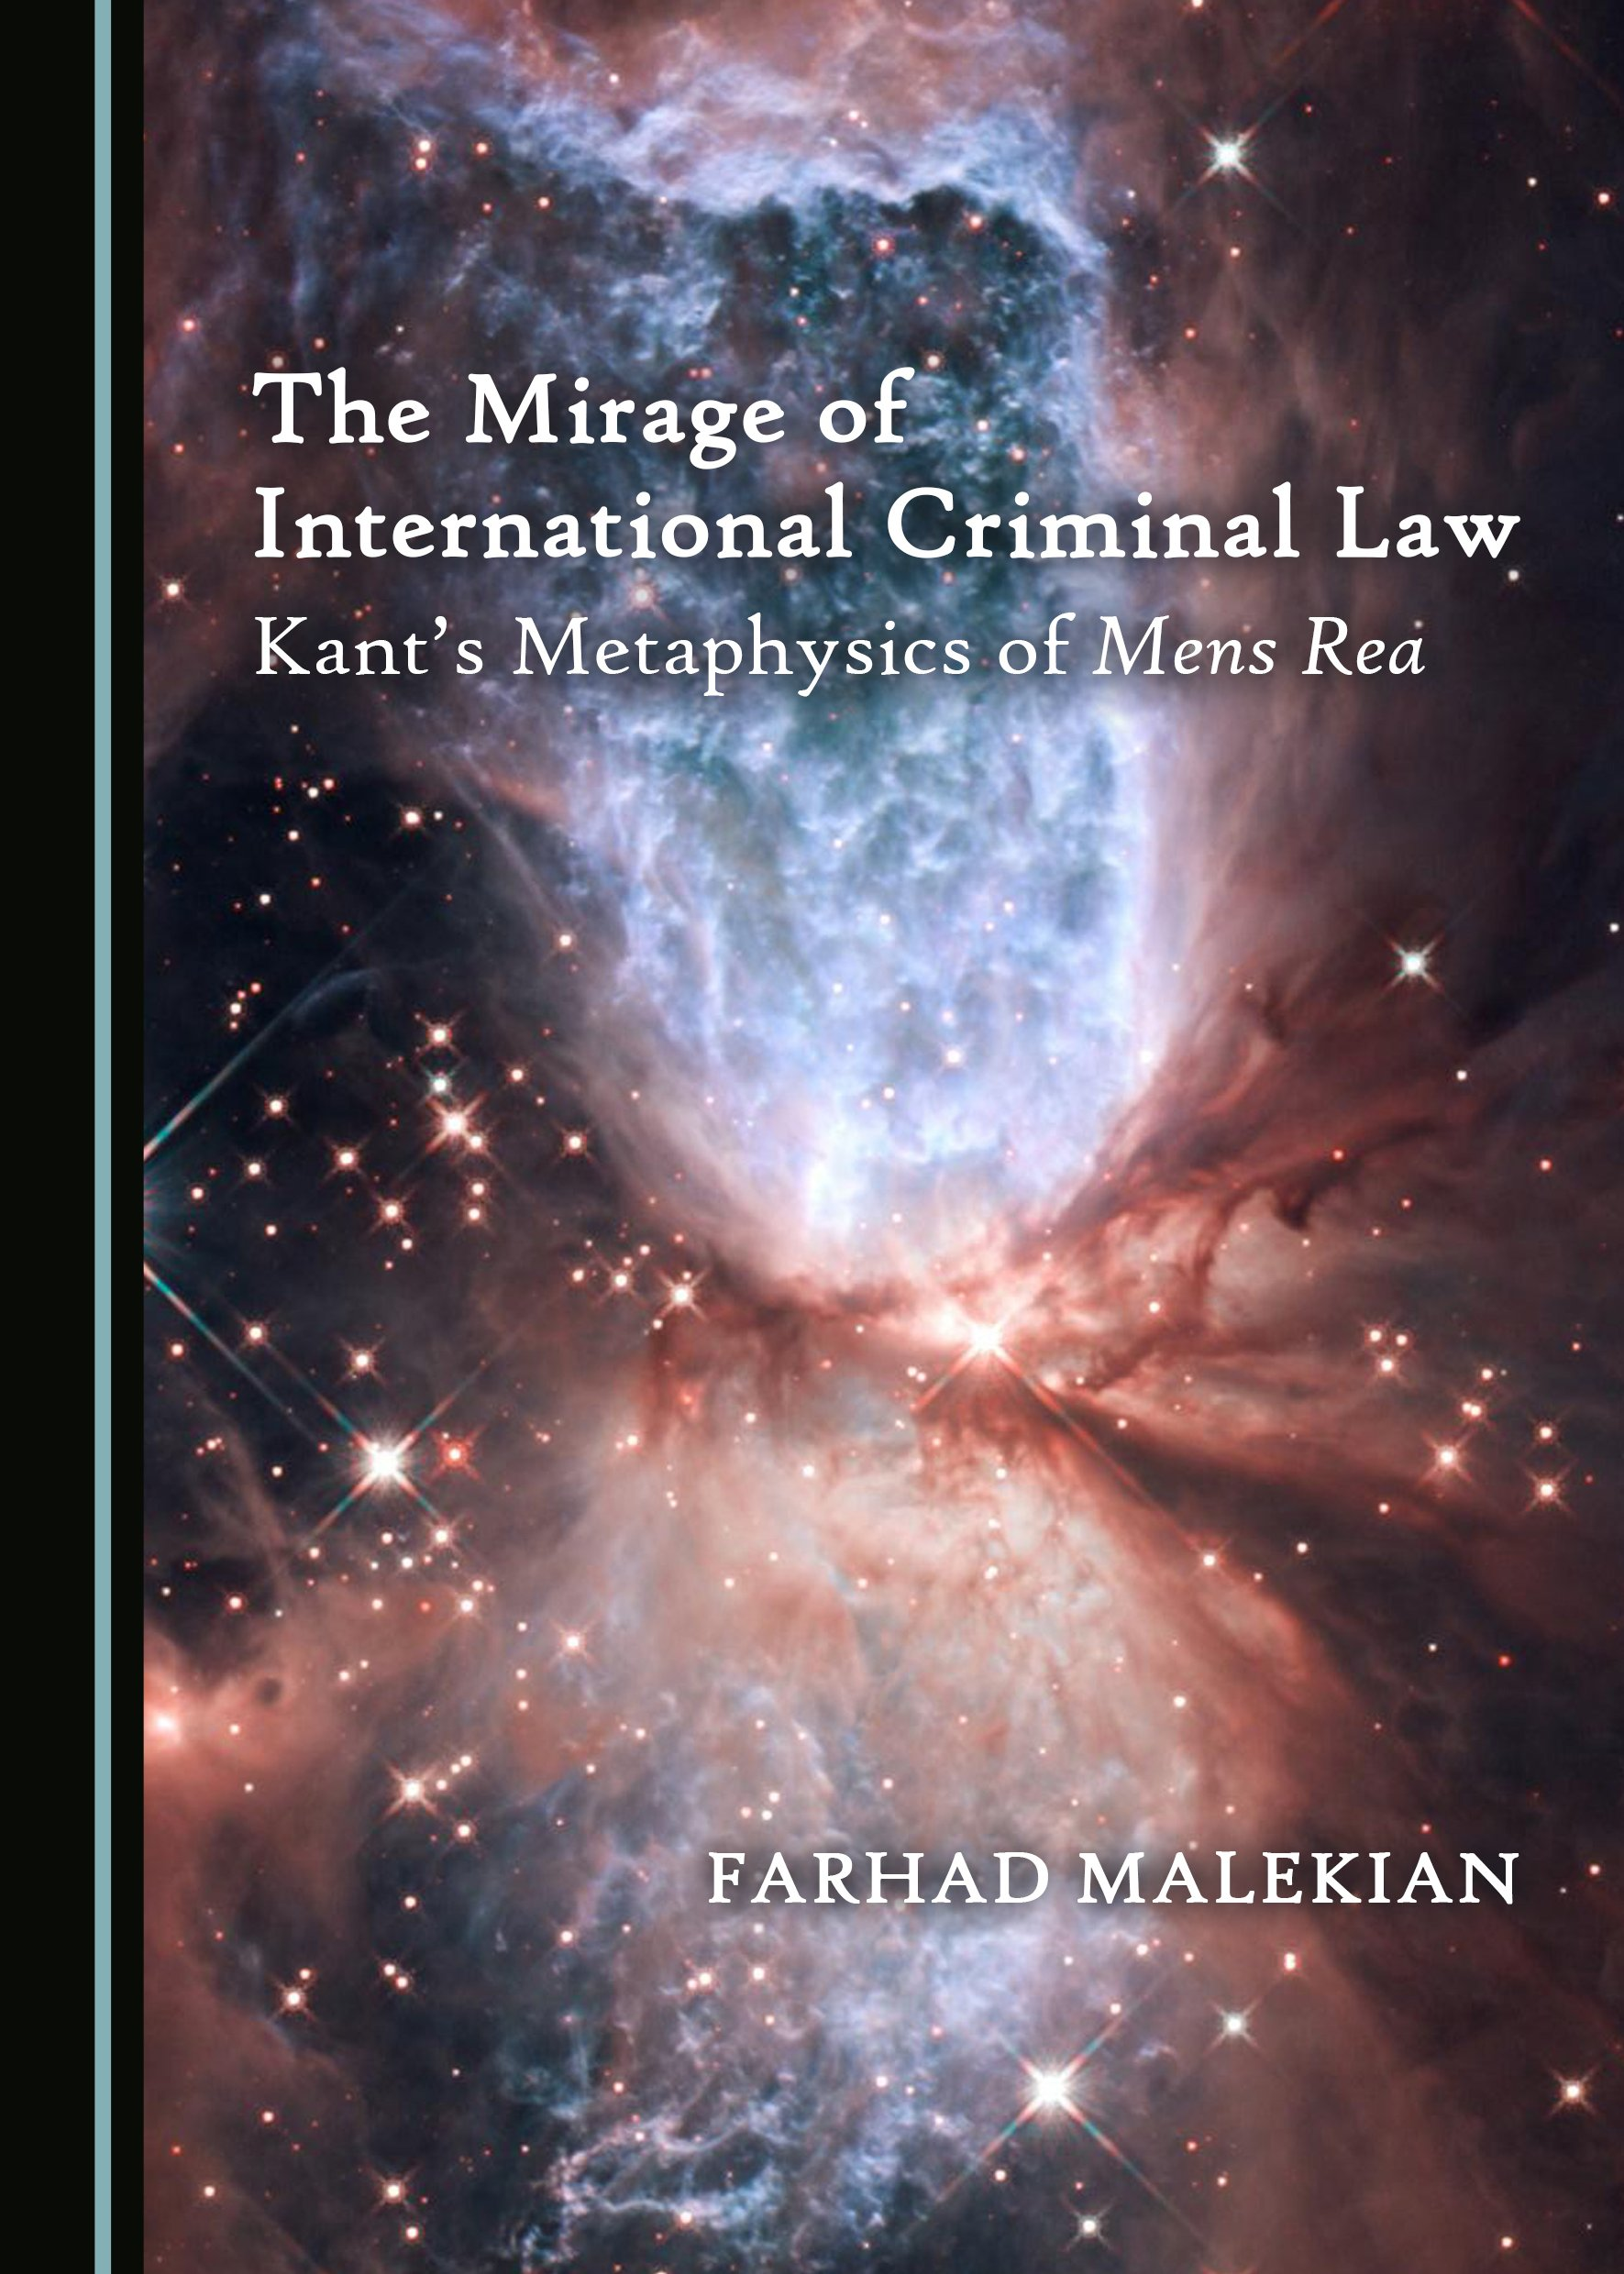 The Mirage of International Criminal Law: Kant's Metaphysics of Mens Rea